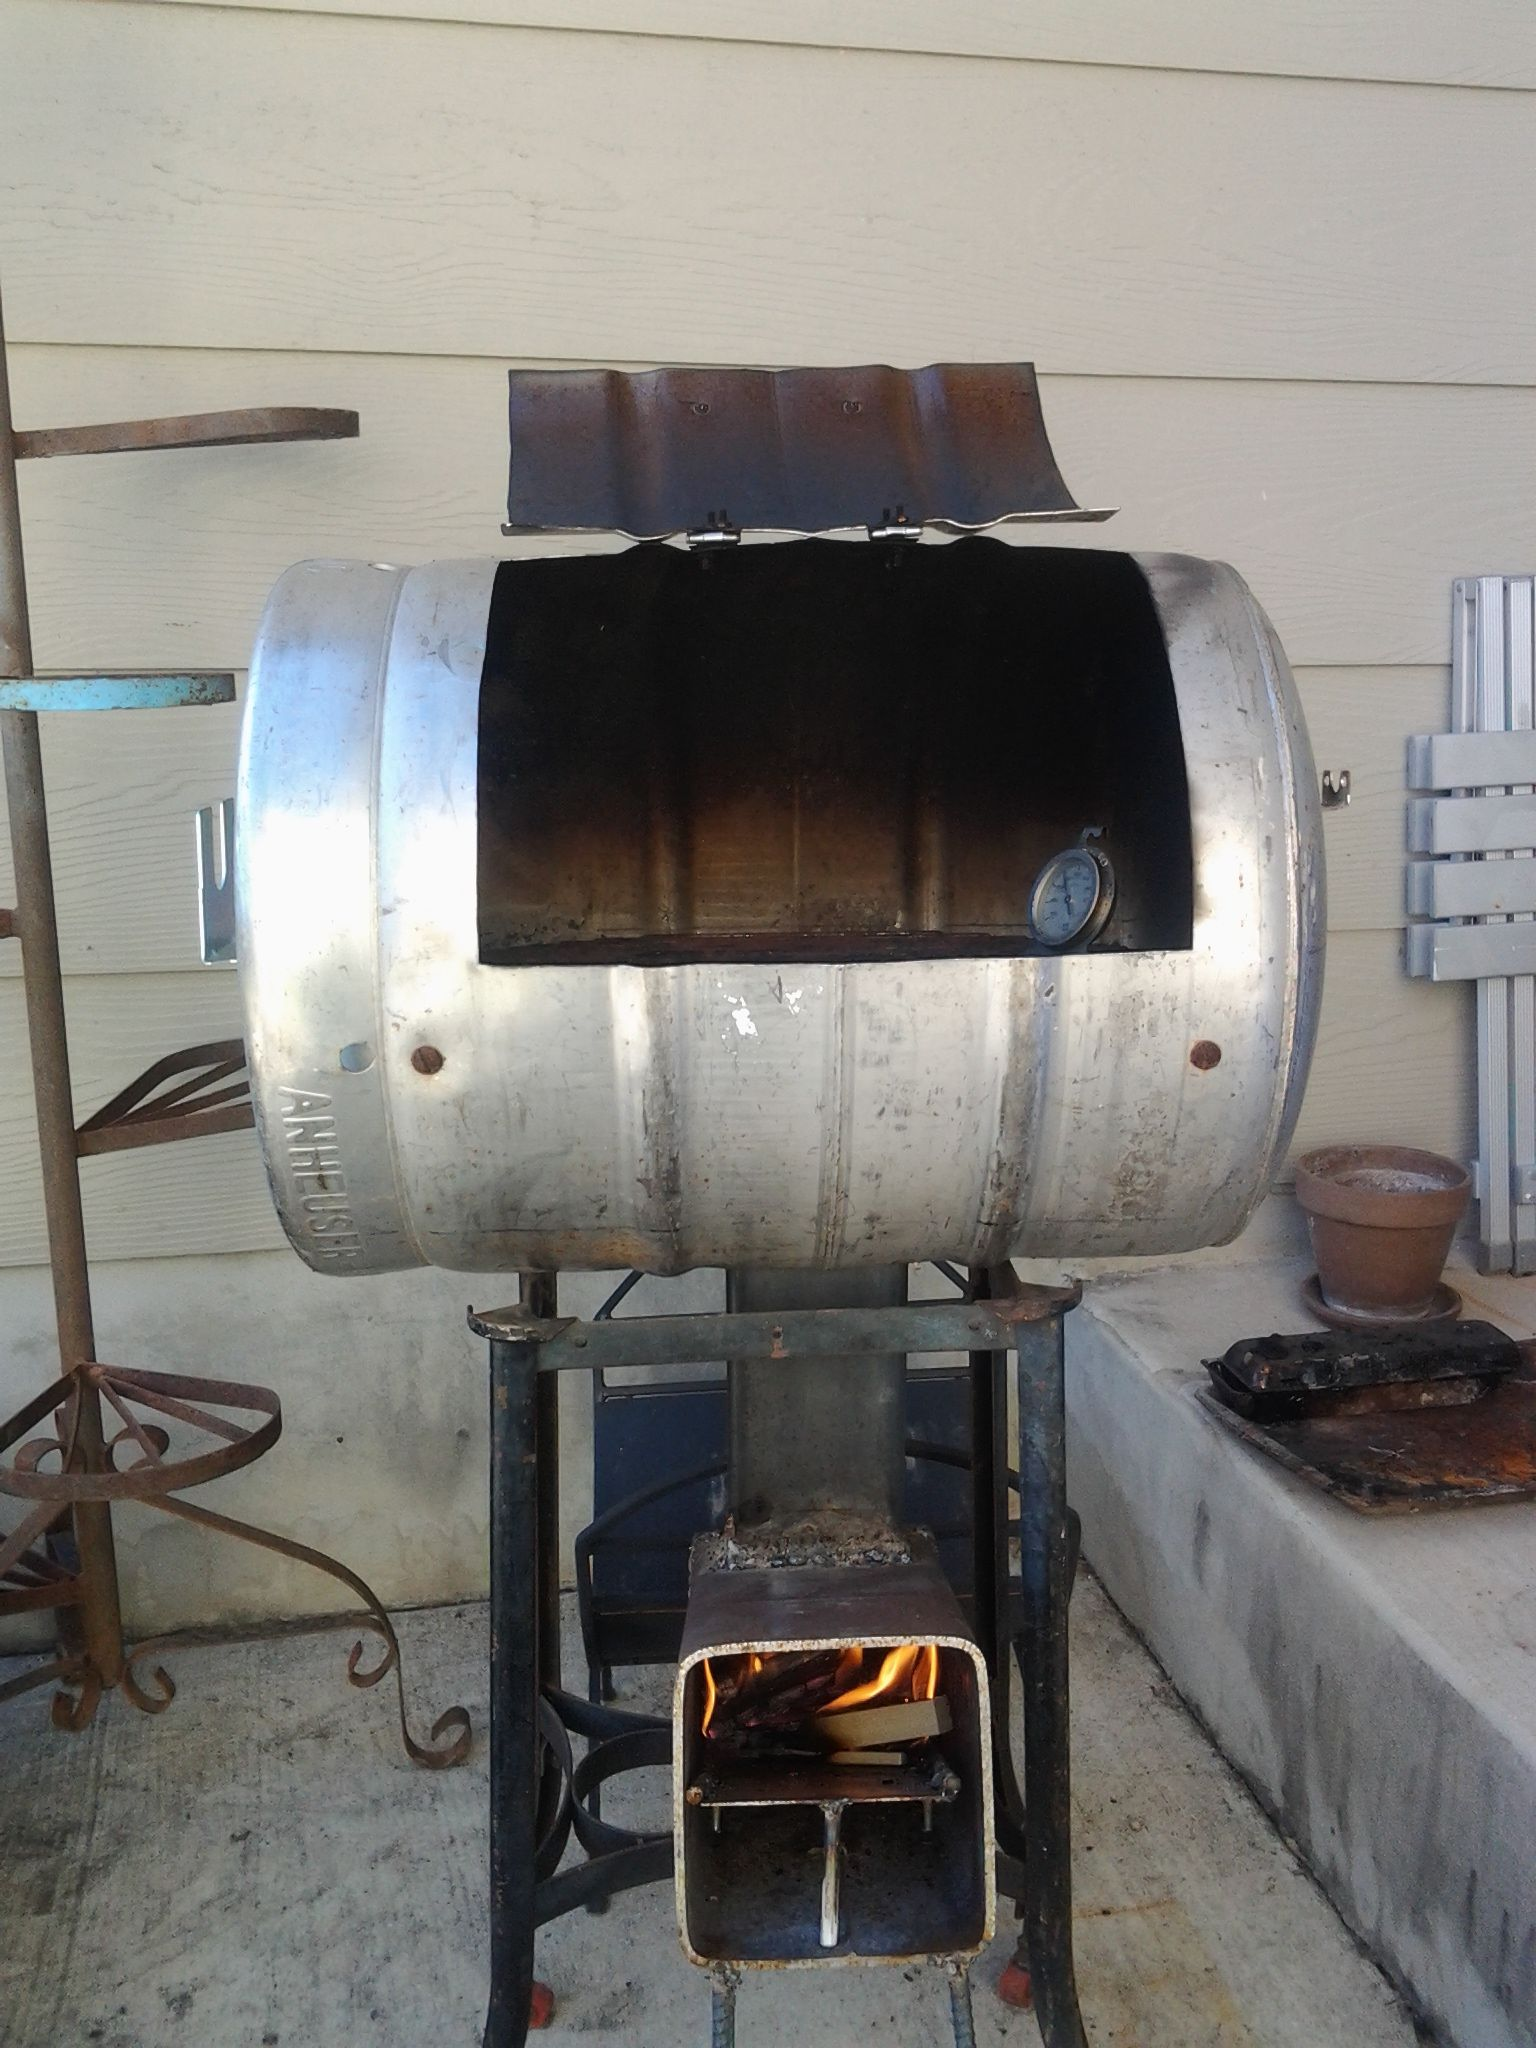 Rocket stove and barbeque beer barrel got it up to 350 for Make a rocket stove